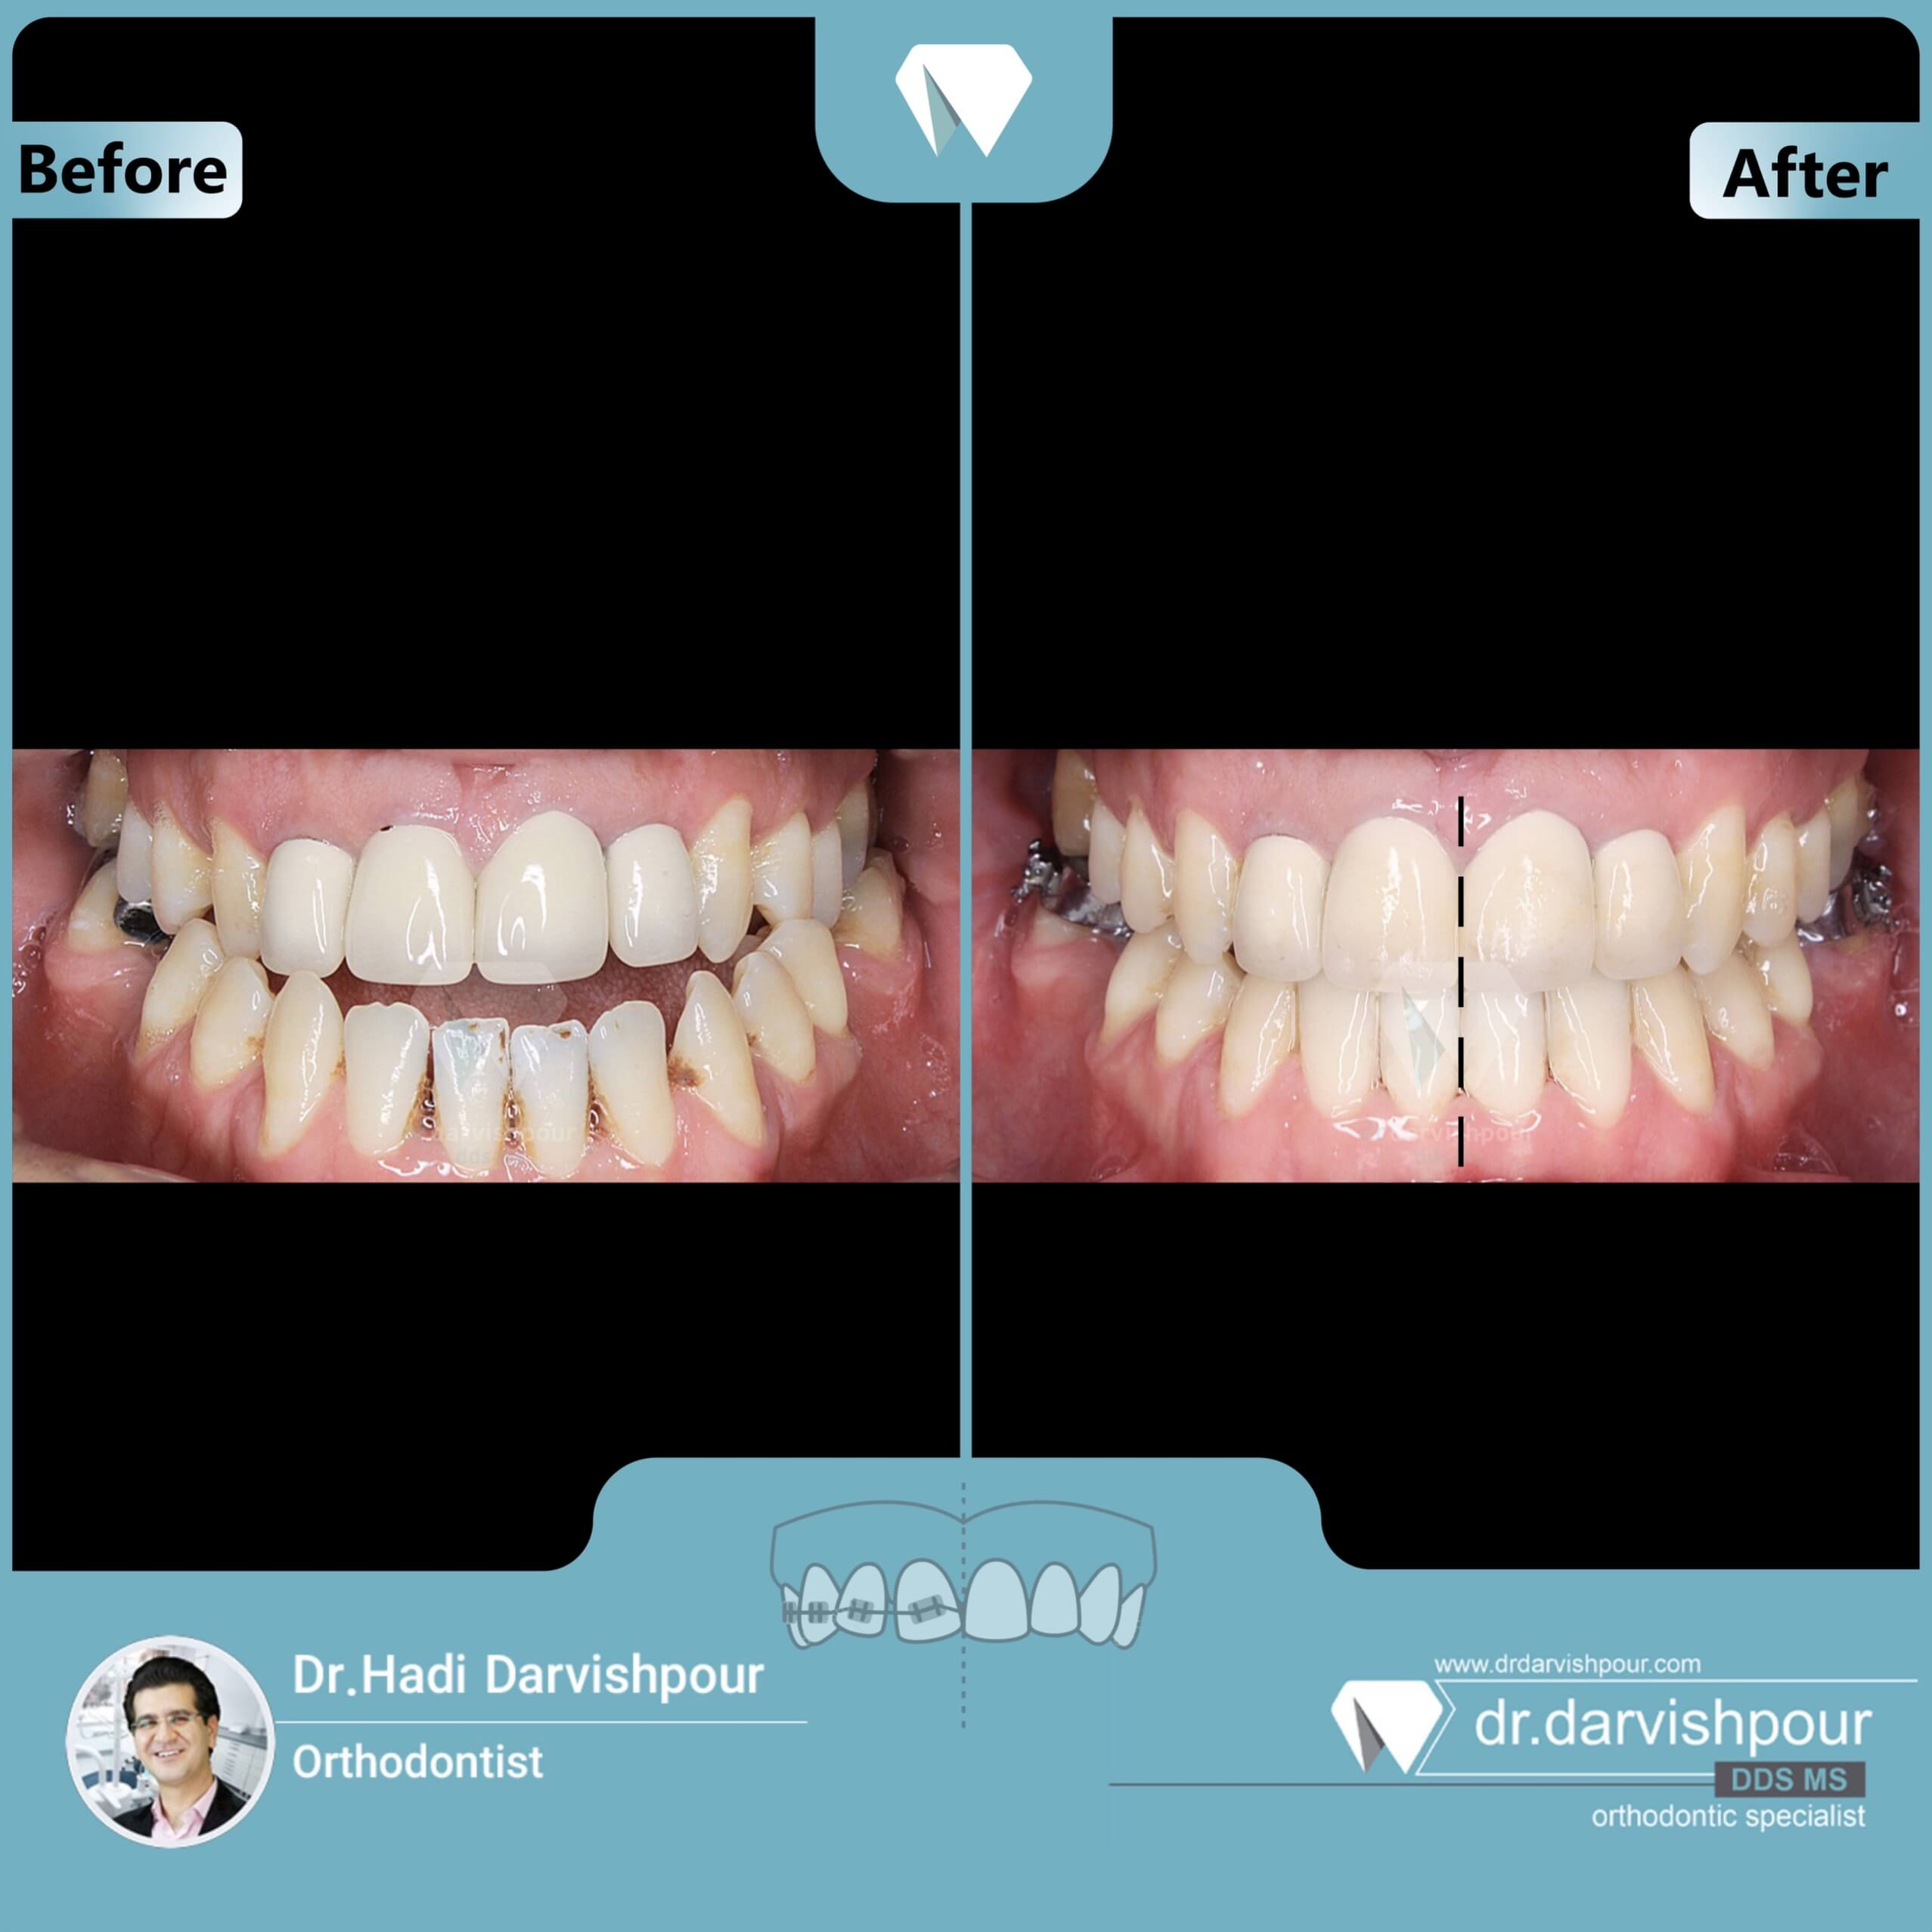 1717orthodontics-before-after-photo